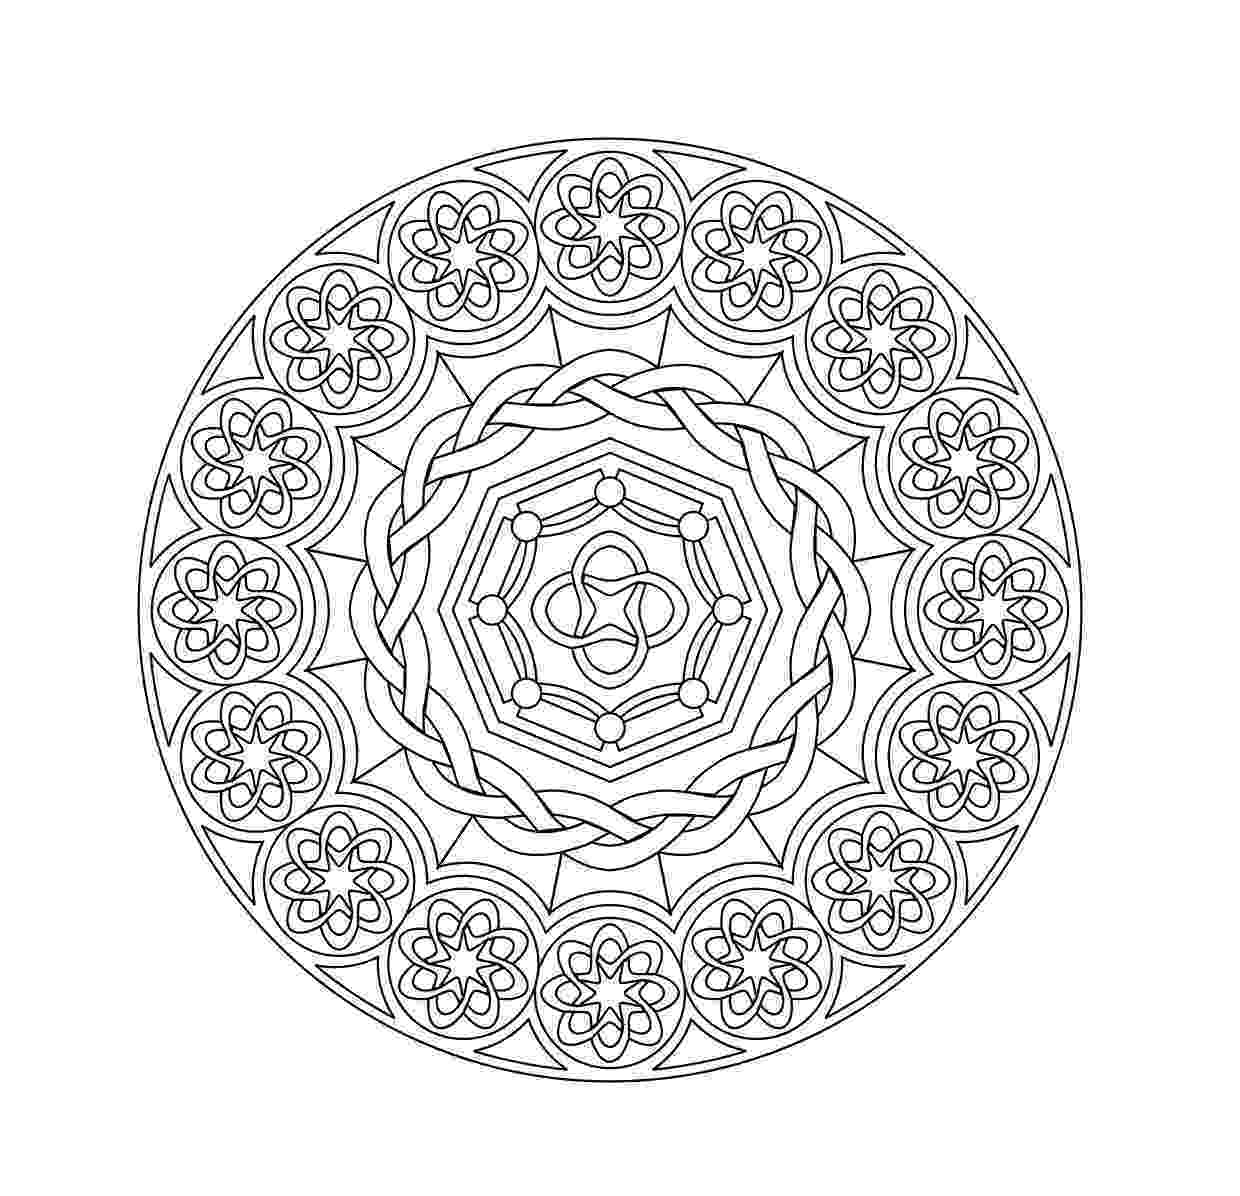 printable mandala coloring pages for adults items similar to mandala adult coloring page 56 on etsy adults pages coloring for mandala printable